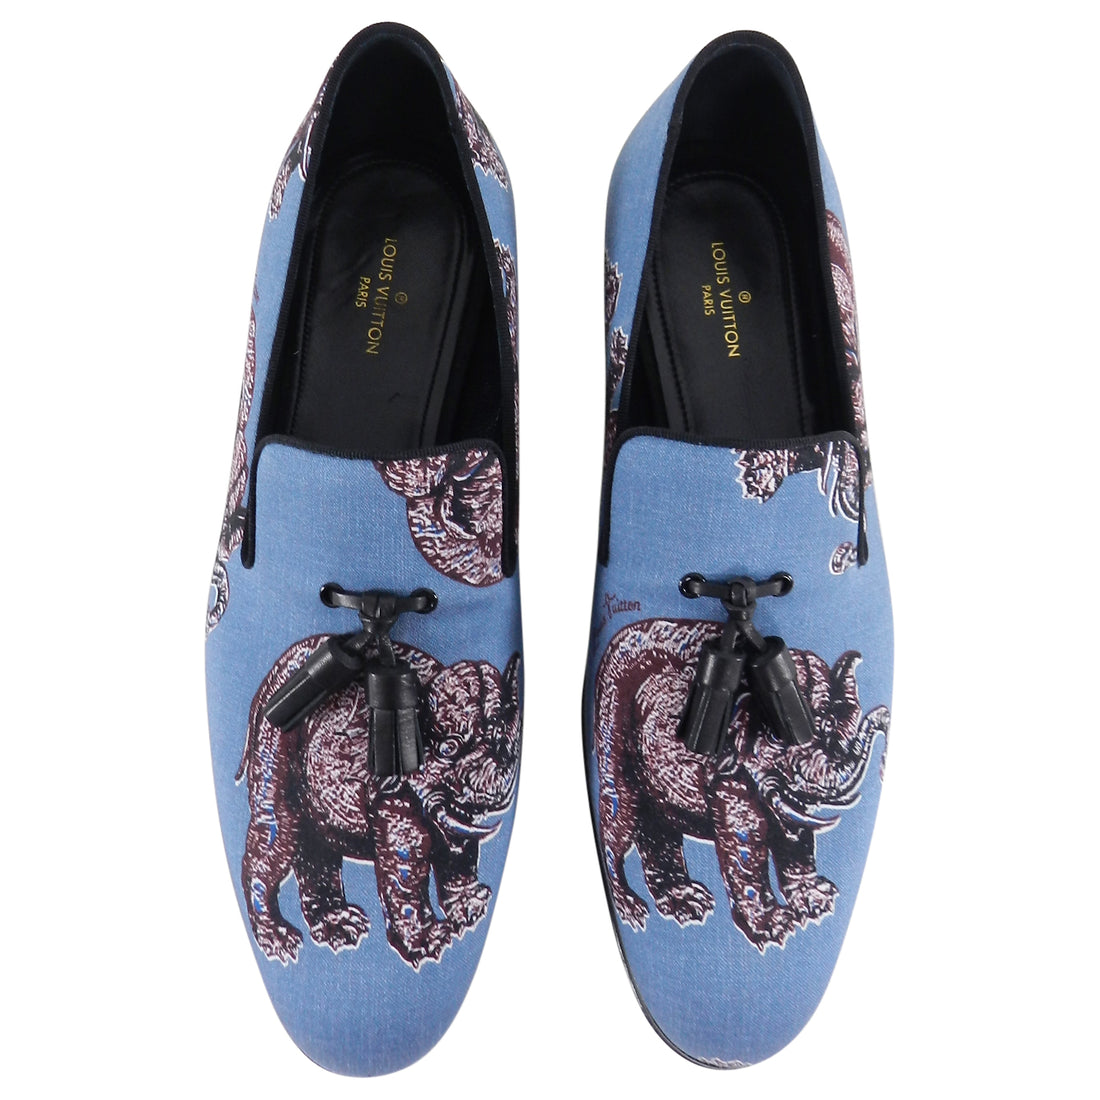 Louis Vuitton x Chapman Brothers Blue Elephant Auteuil Slipper Loafers - 10